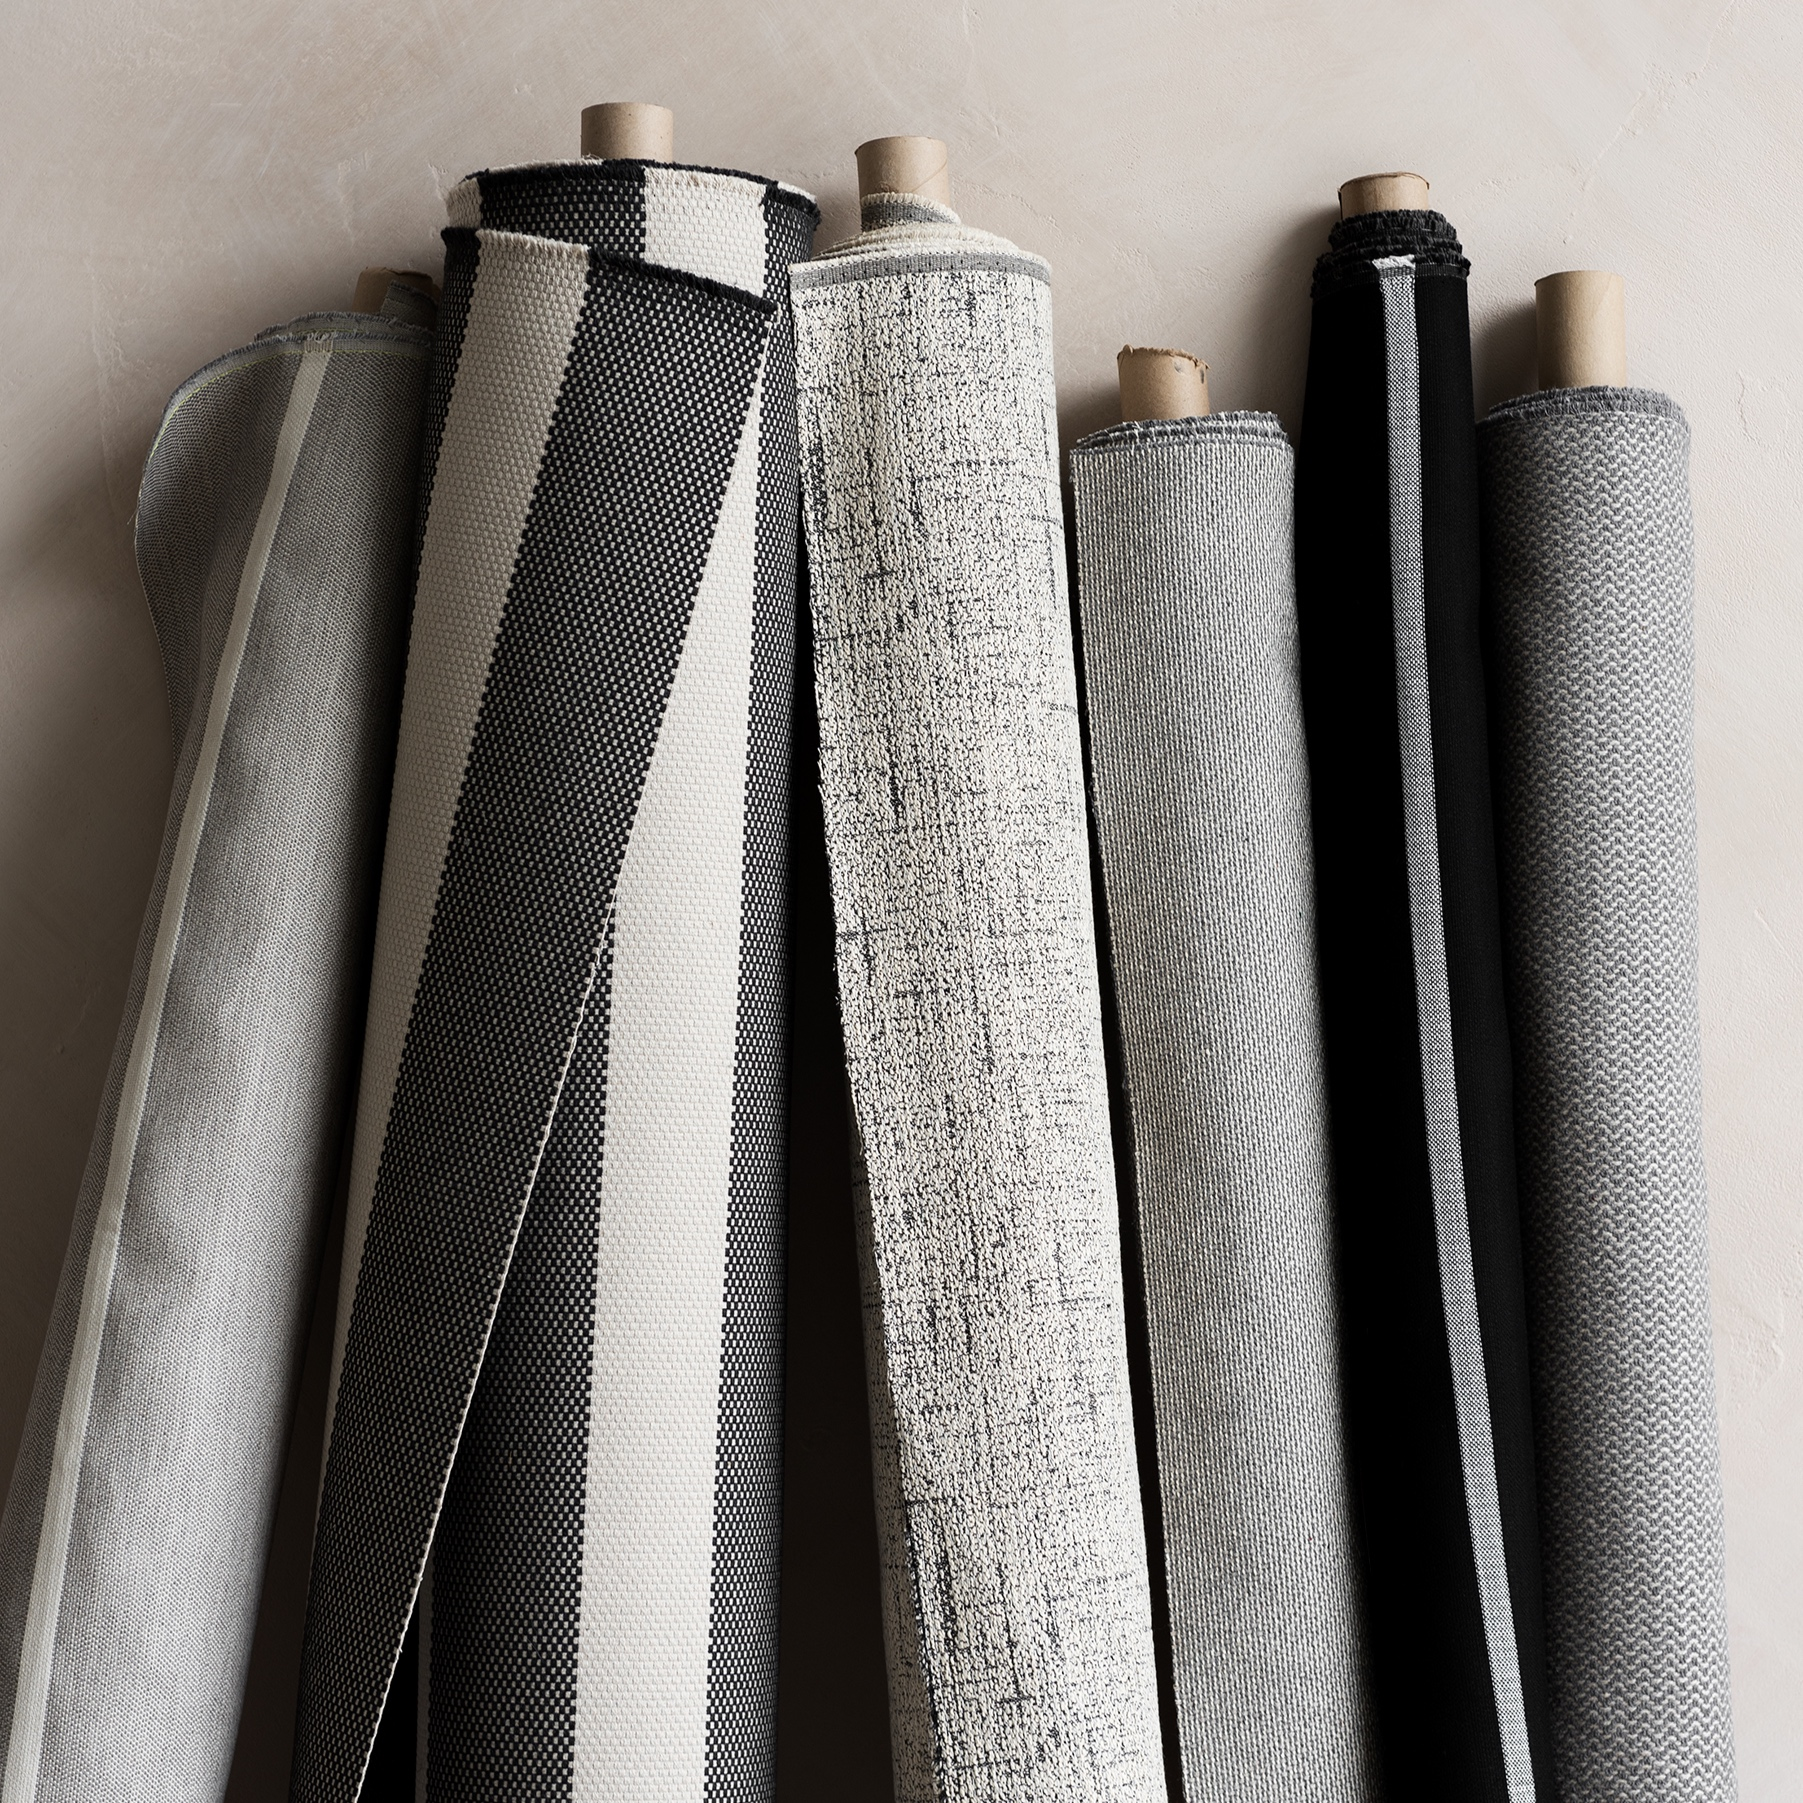 Sien + Co - Sien + Co offers a new collection of performance fabrics in partnership with Sunbrella®. Inspired by the imperfection of handcraft, this new collection is the thickest, most texturized Sunbrella fabric ever created.